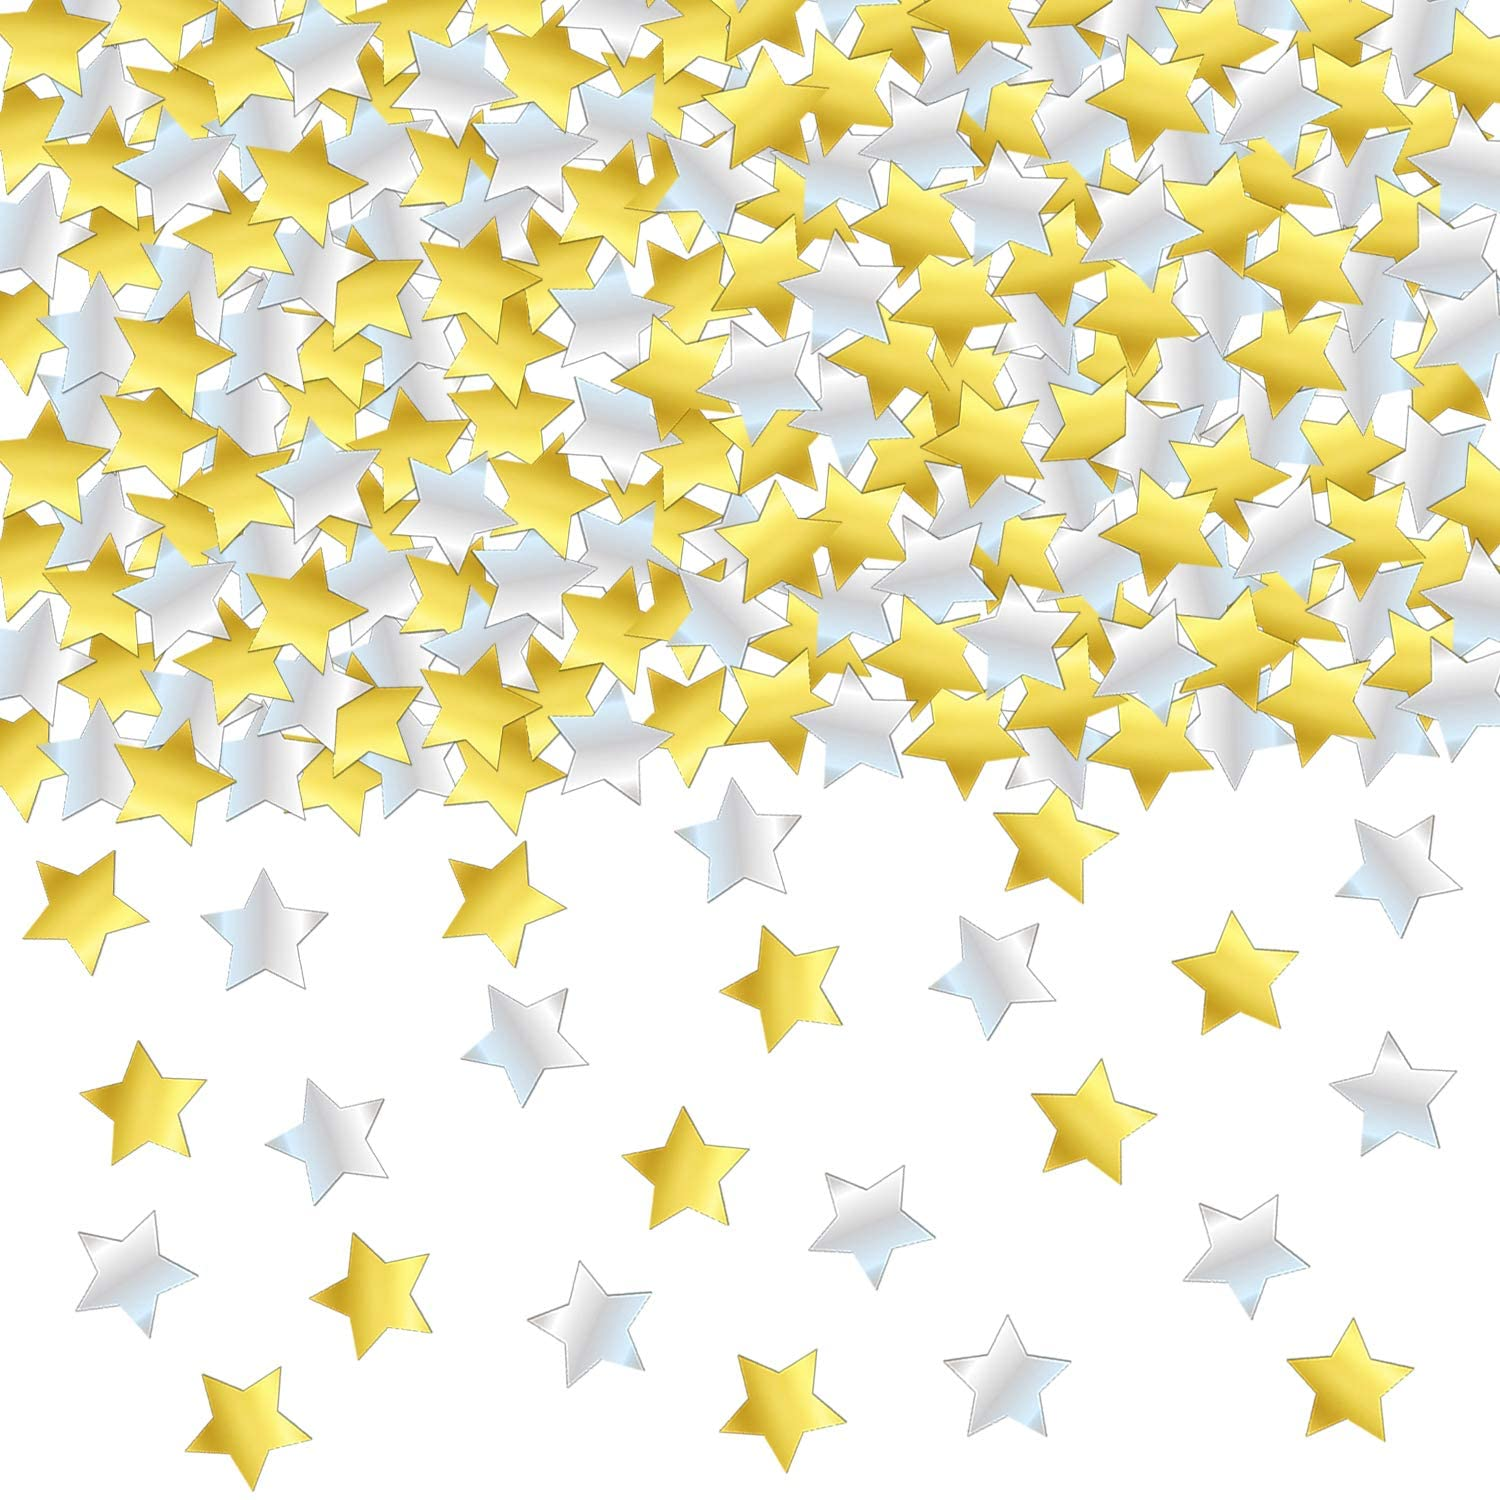 GOLD and SILVER STAR CONFETTI - 1.7 Oz Golden Silver Star Metallic Foil Sequin Confetti for Party   Wedding Decorations   Twinkle Twinkle Little Star Decorations   Adult Birthday Party   Arts Crafting